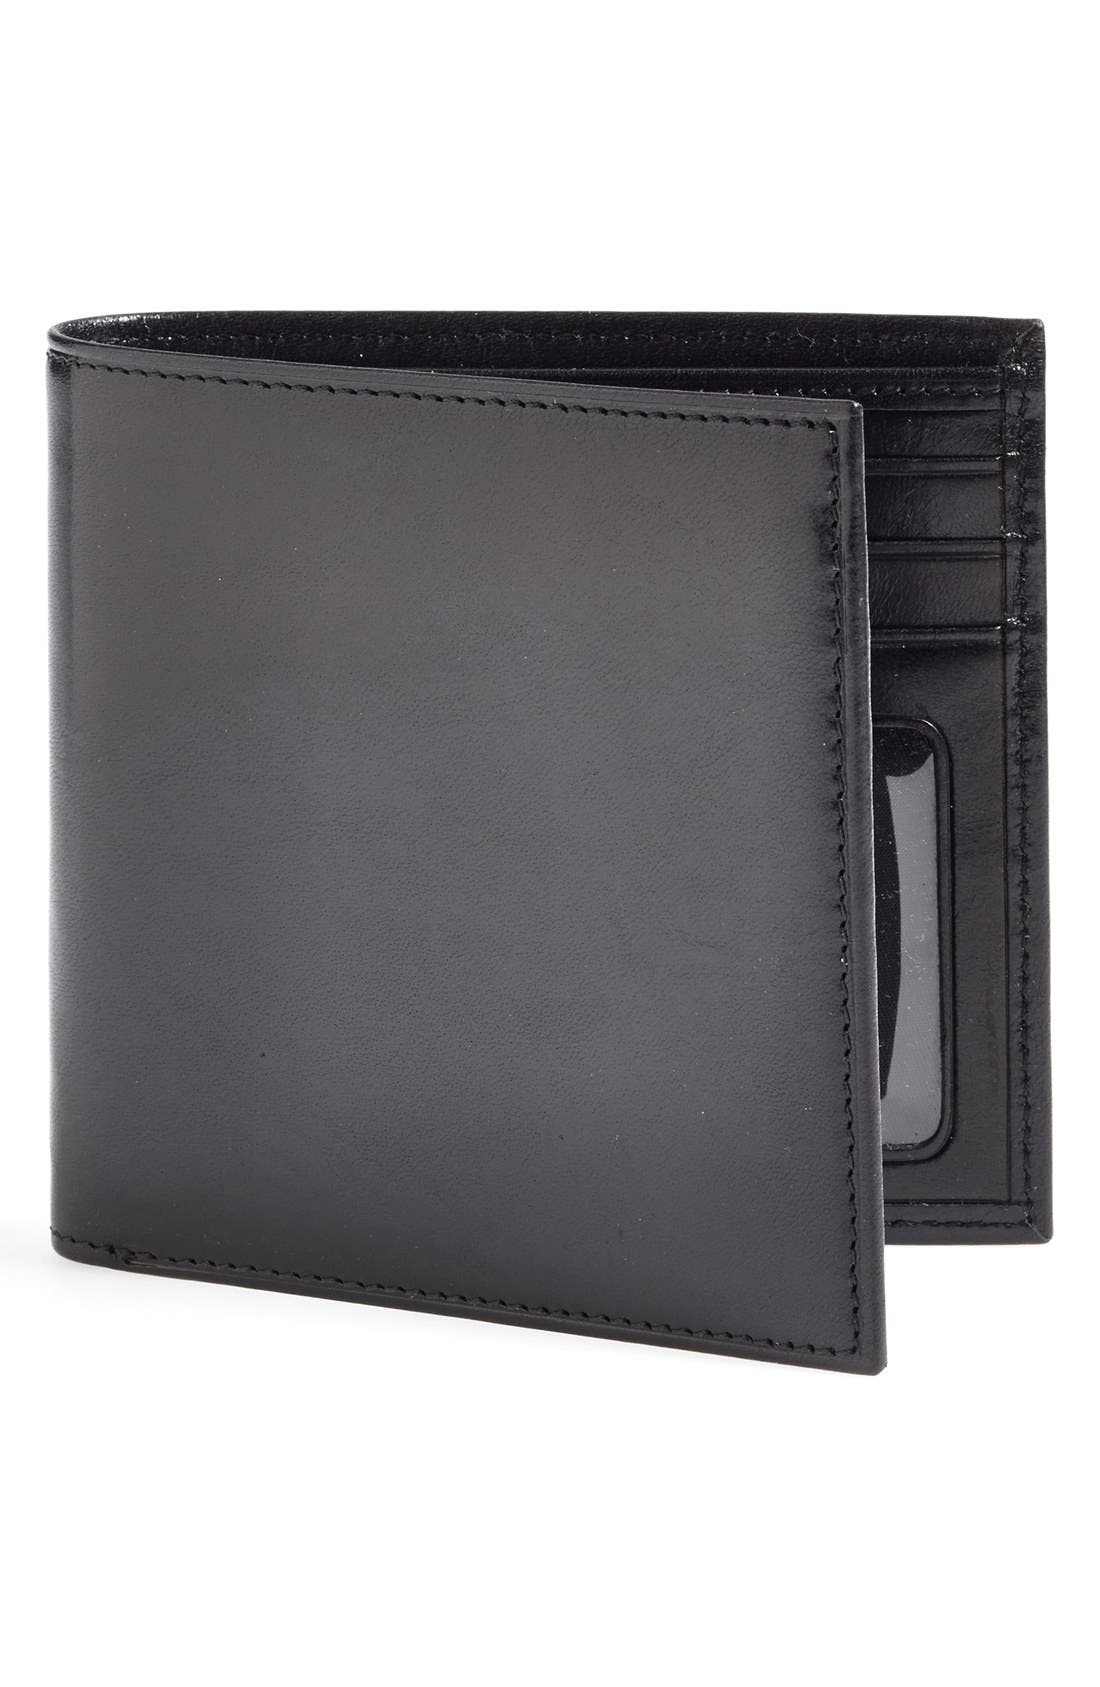 'Old Leather' Bifold Wallet,                             Main thumbnail 1, color,                             001